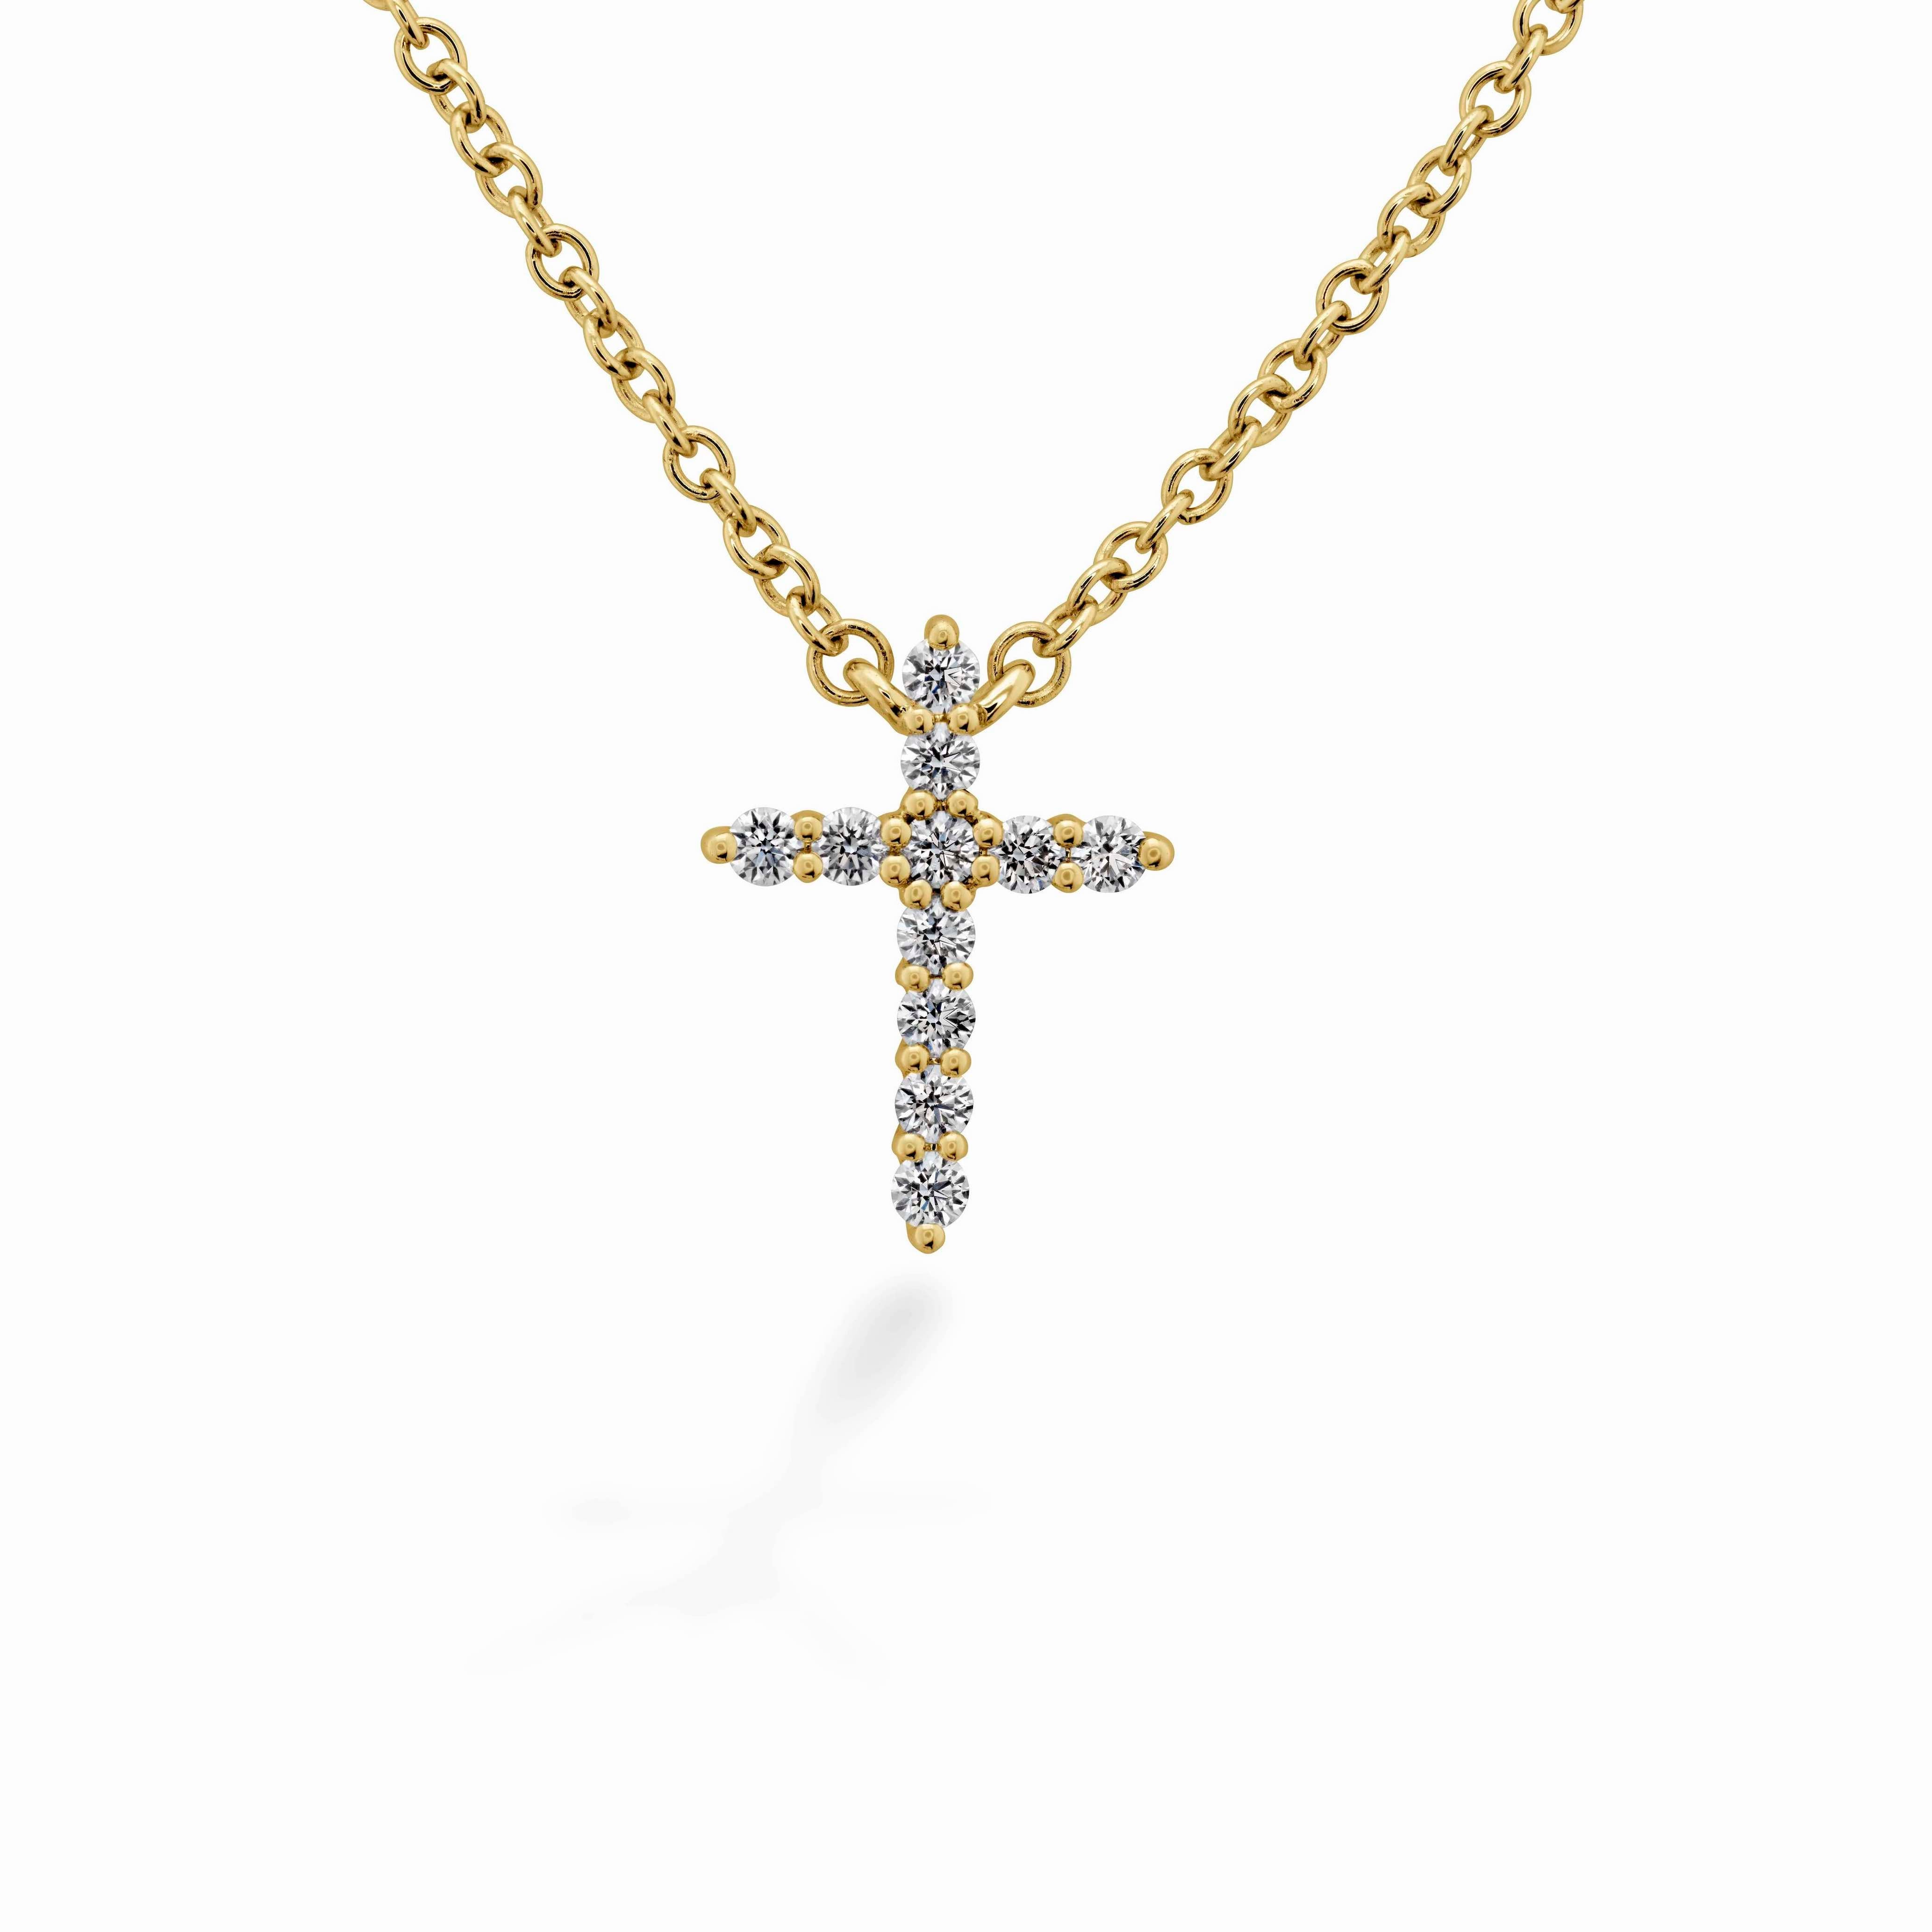 Signature Cross Pendant - Small